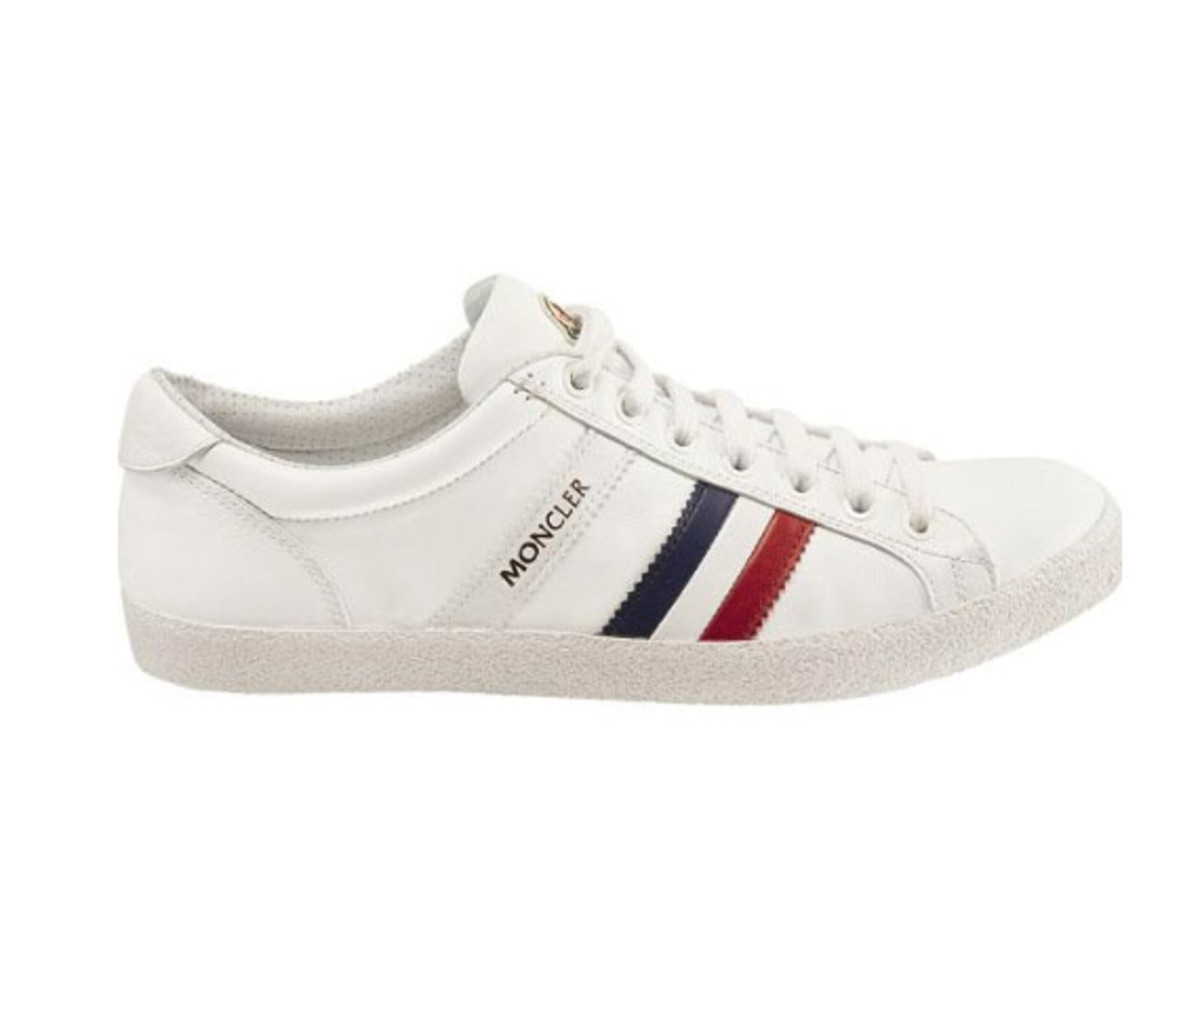 moncler-ss10-sneakers-collection-4